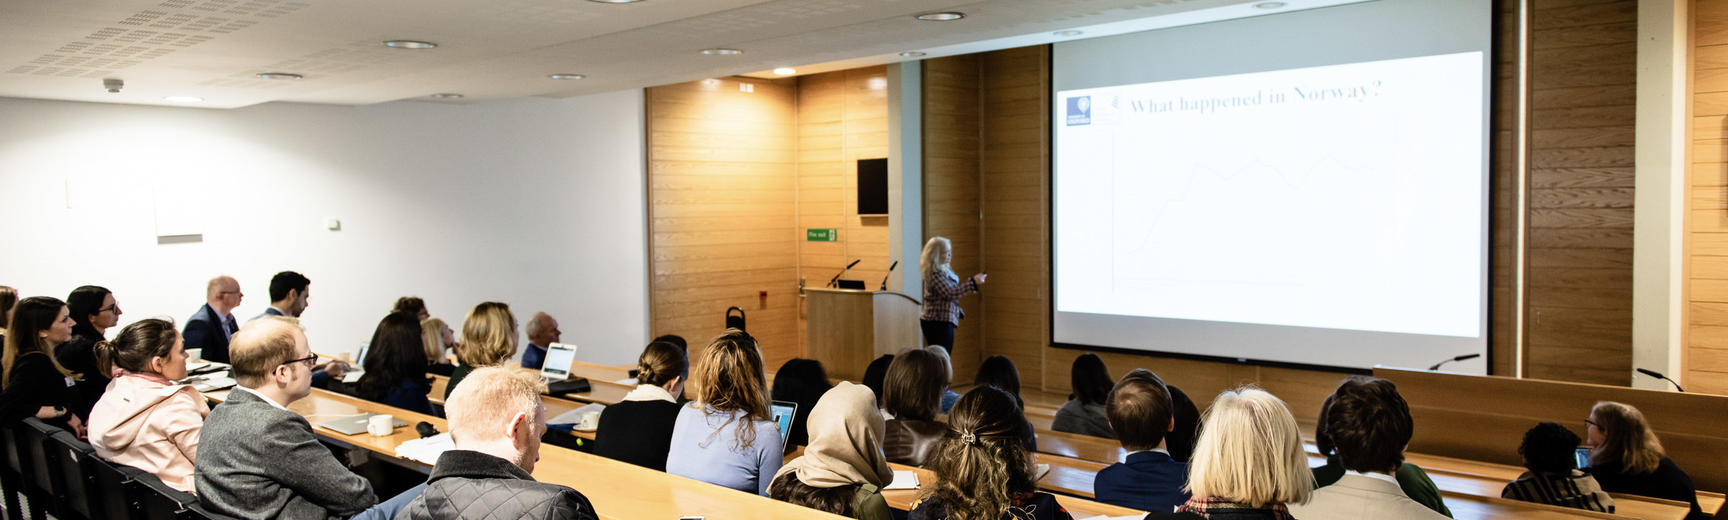 Lecturer speaks to students